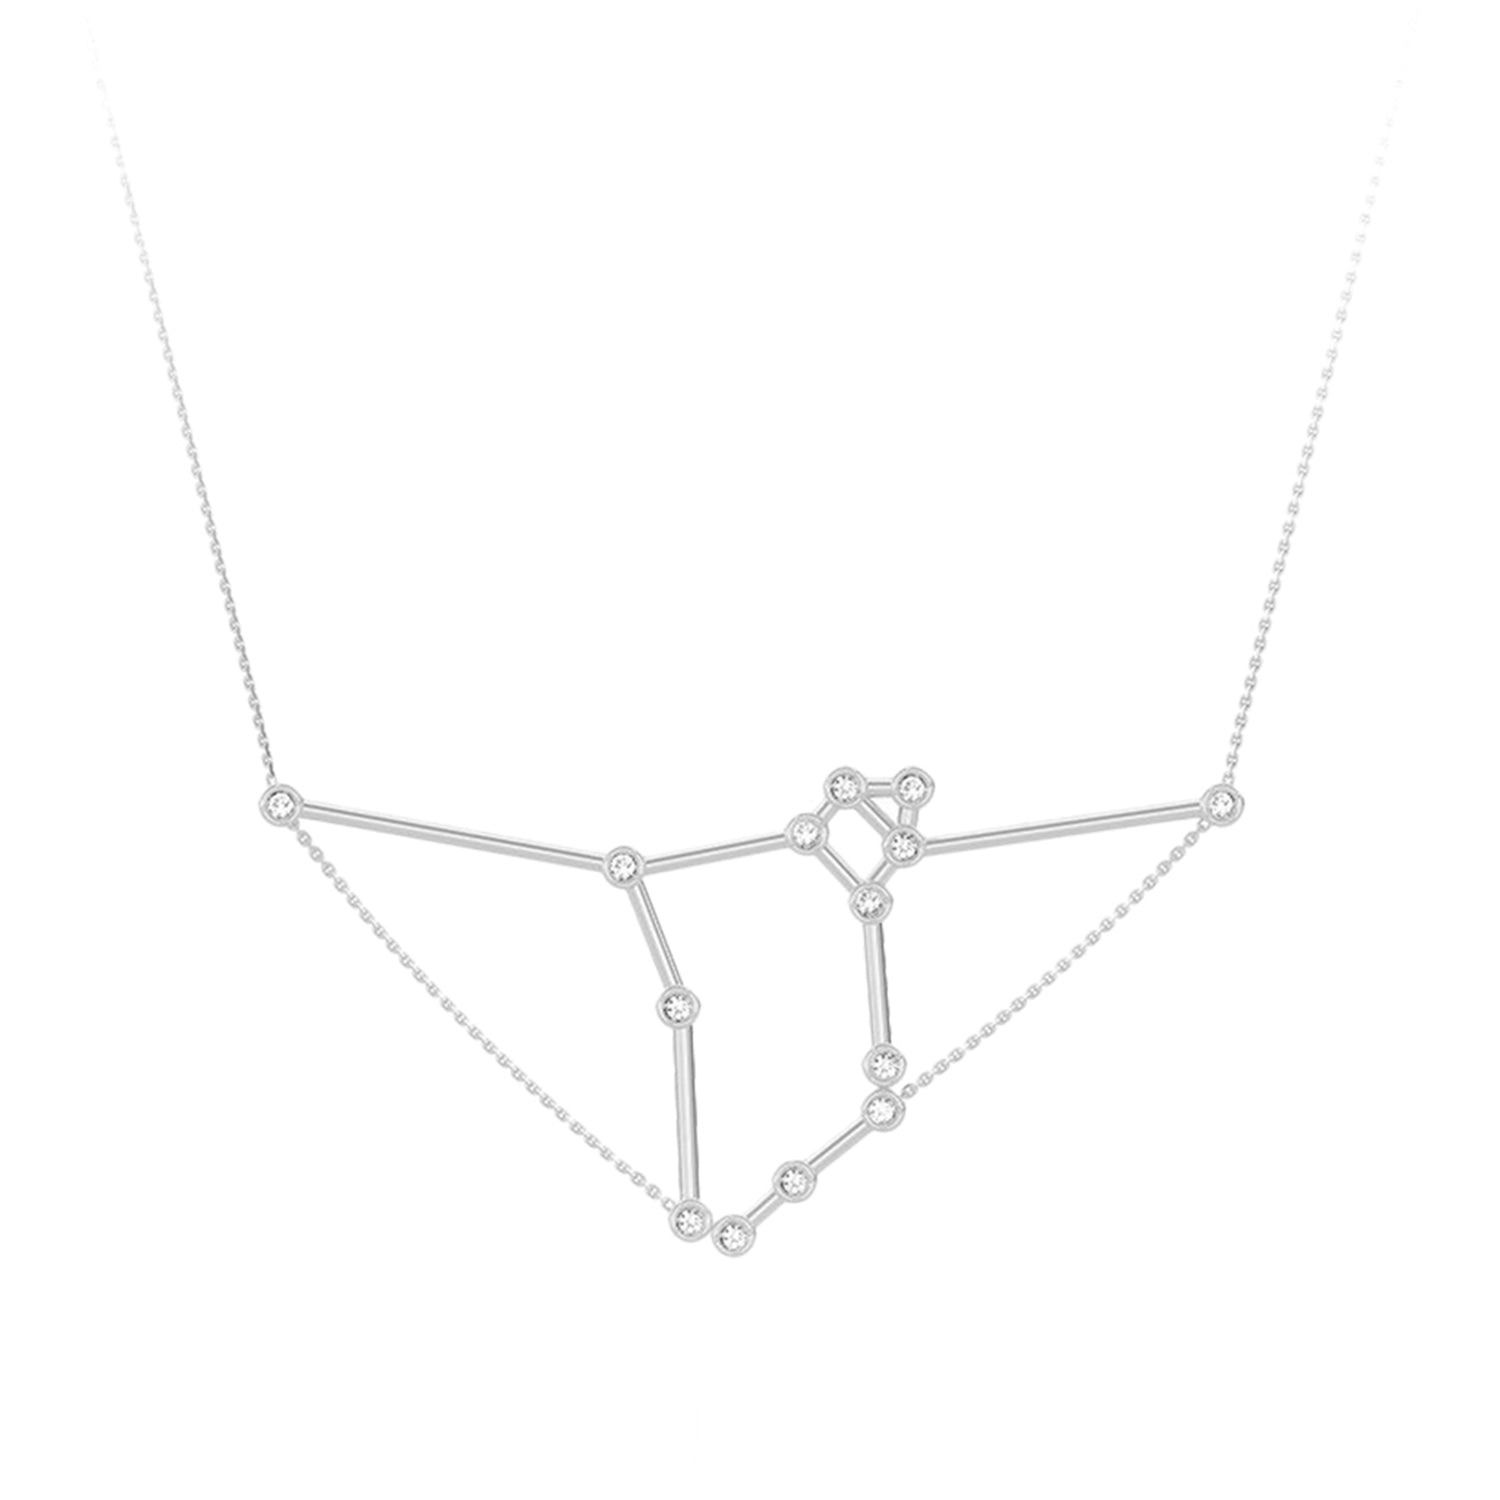 Gold & White Diamond Pisces Constellation Necklace by Jessie Ve for Broken English Jewelry